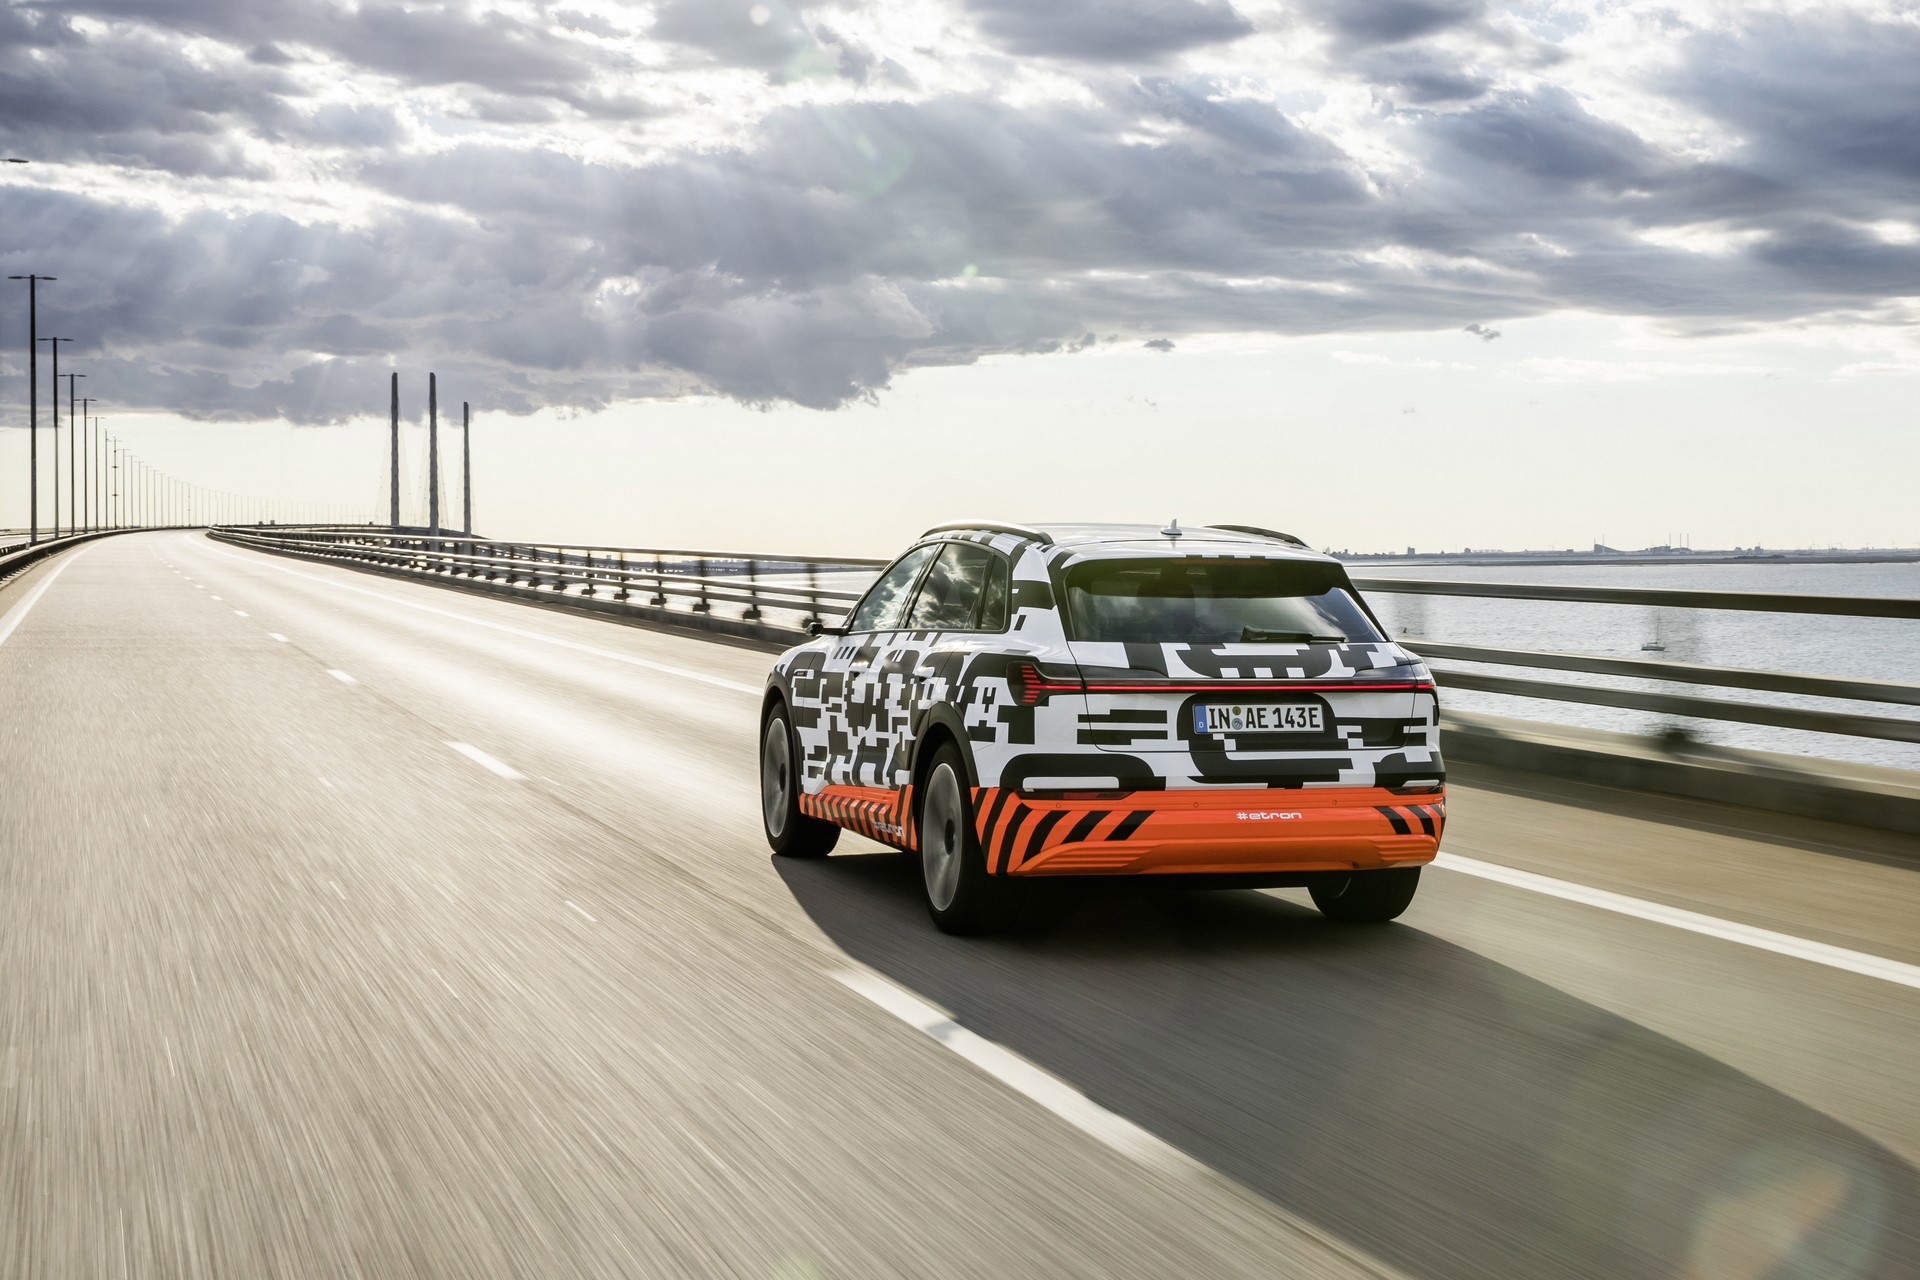 The Audi e-tron prototype on the Öresund Bridge